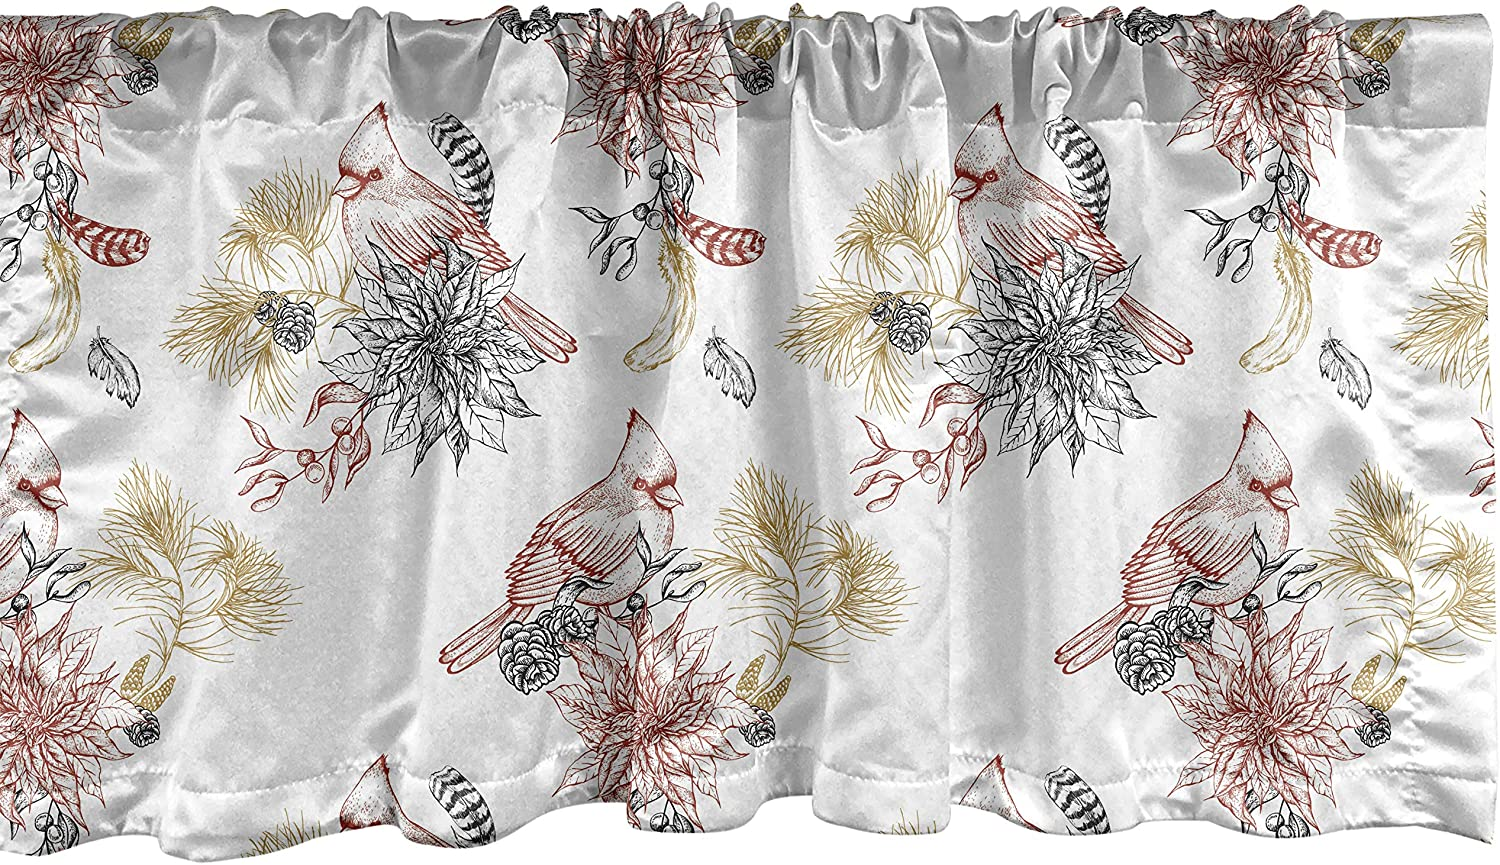 Lunarable Cardinal Bird Window Valance, Creative Vintage Pattern with Leaves Plants Pine Cones, Curtain Valance for Kitchen Bedroom Decor with Rod Pocket, 54